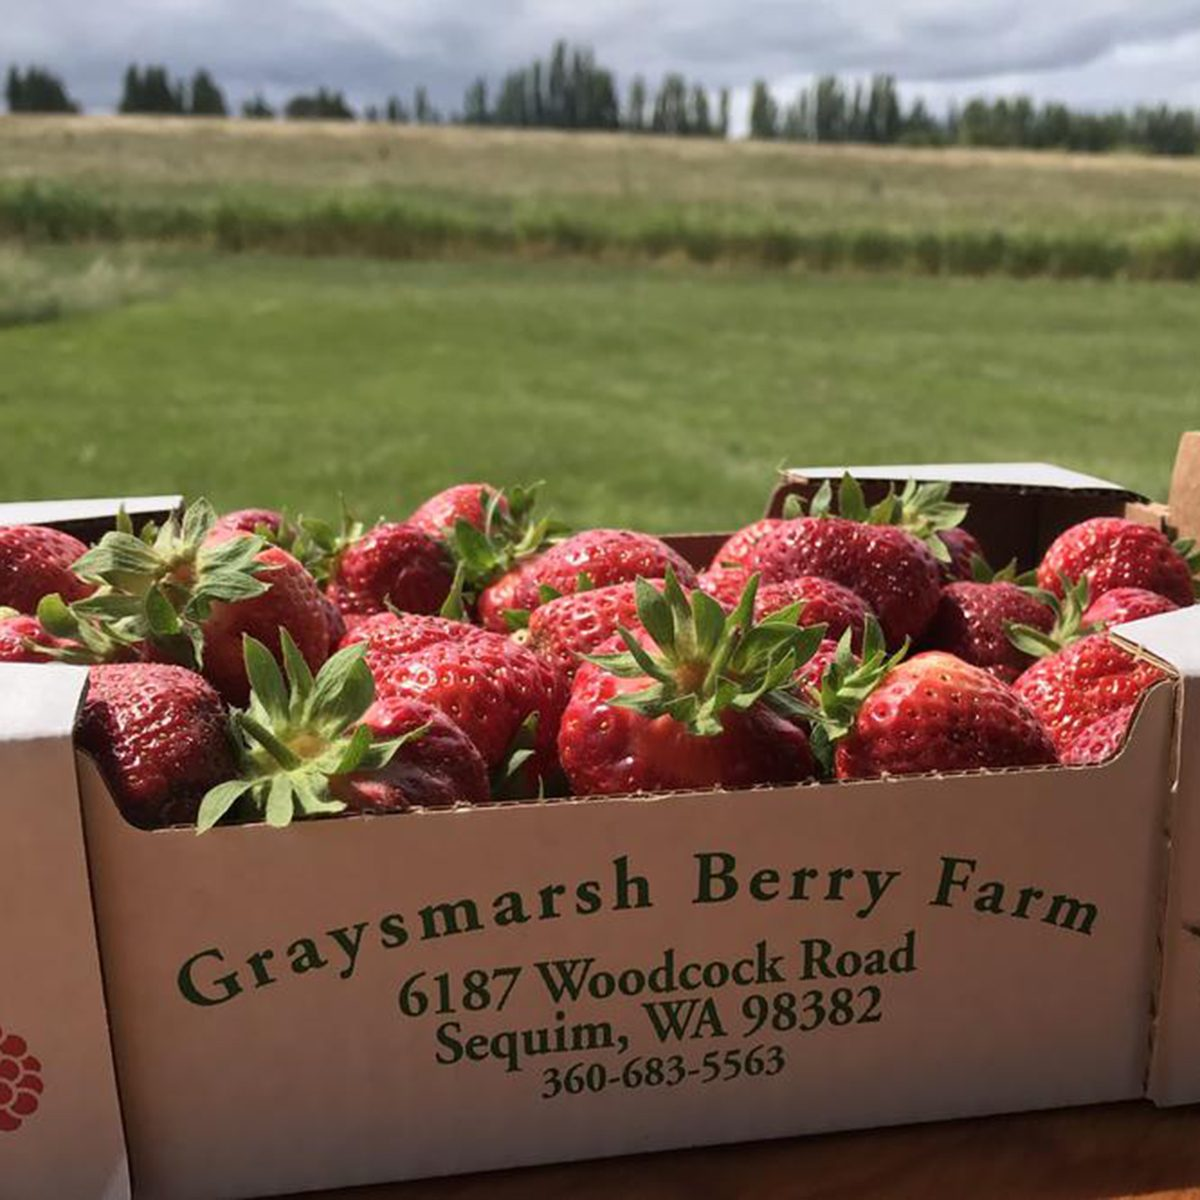 Strawberries on Graysmarsh Farm